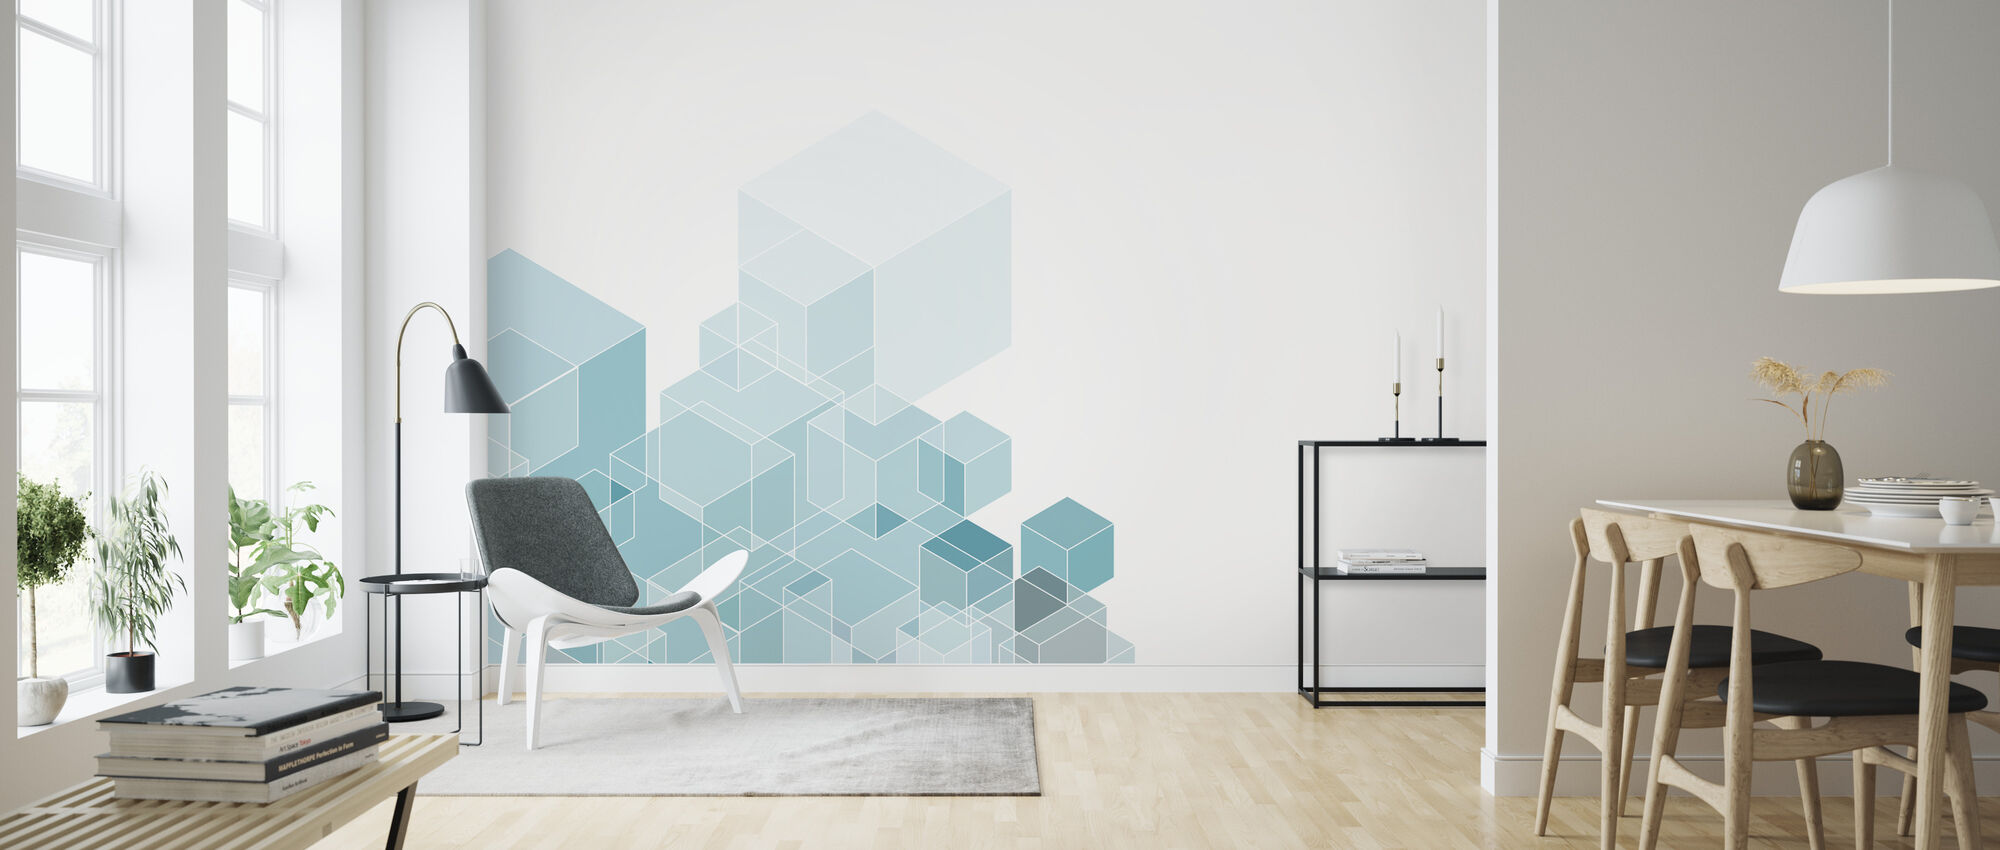 Mint Hexagon Patroon - Behang - Woonkamer